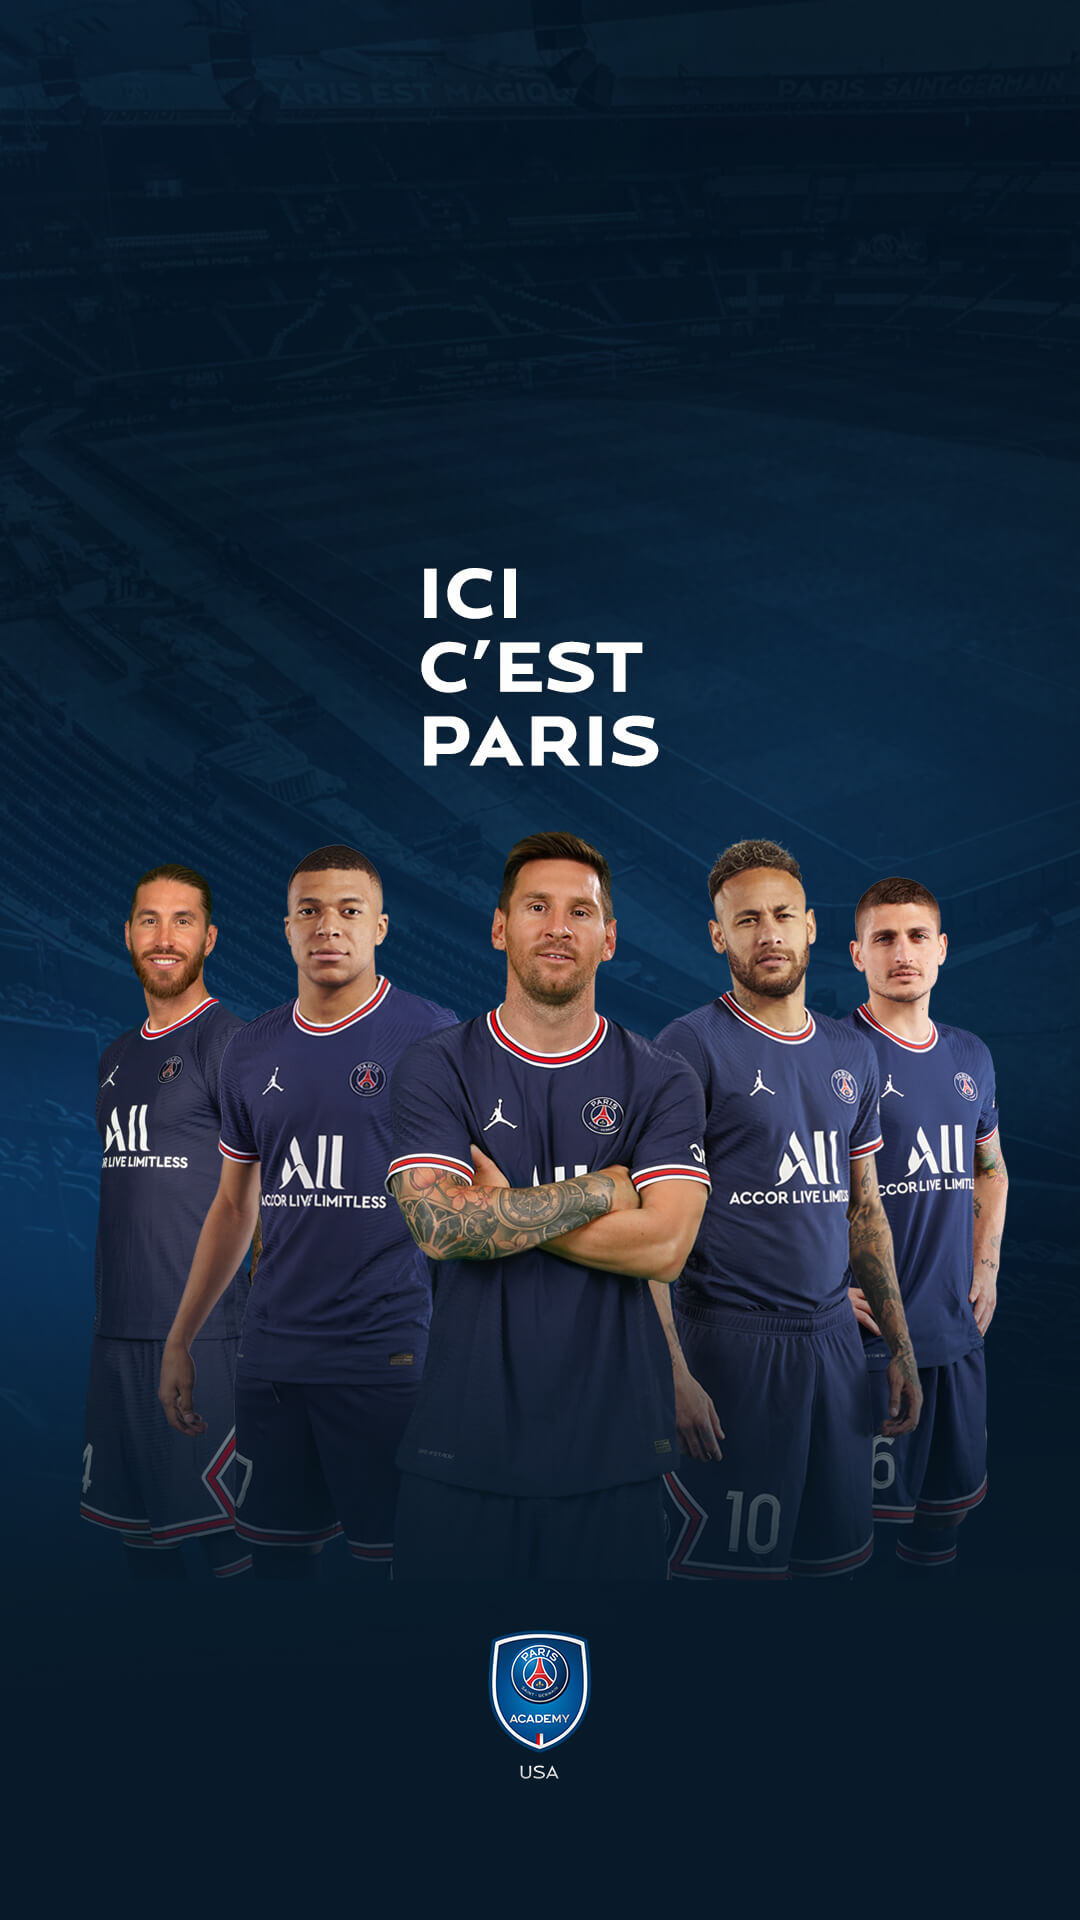 ici-cest-paris-background